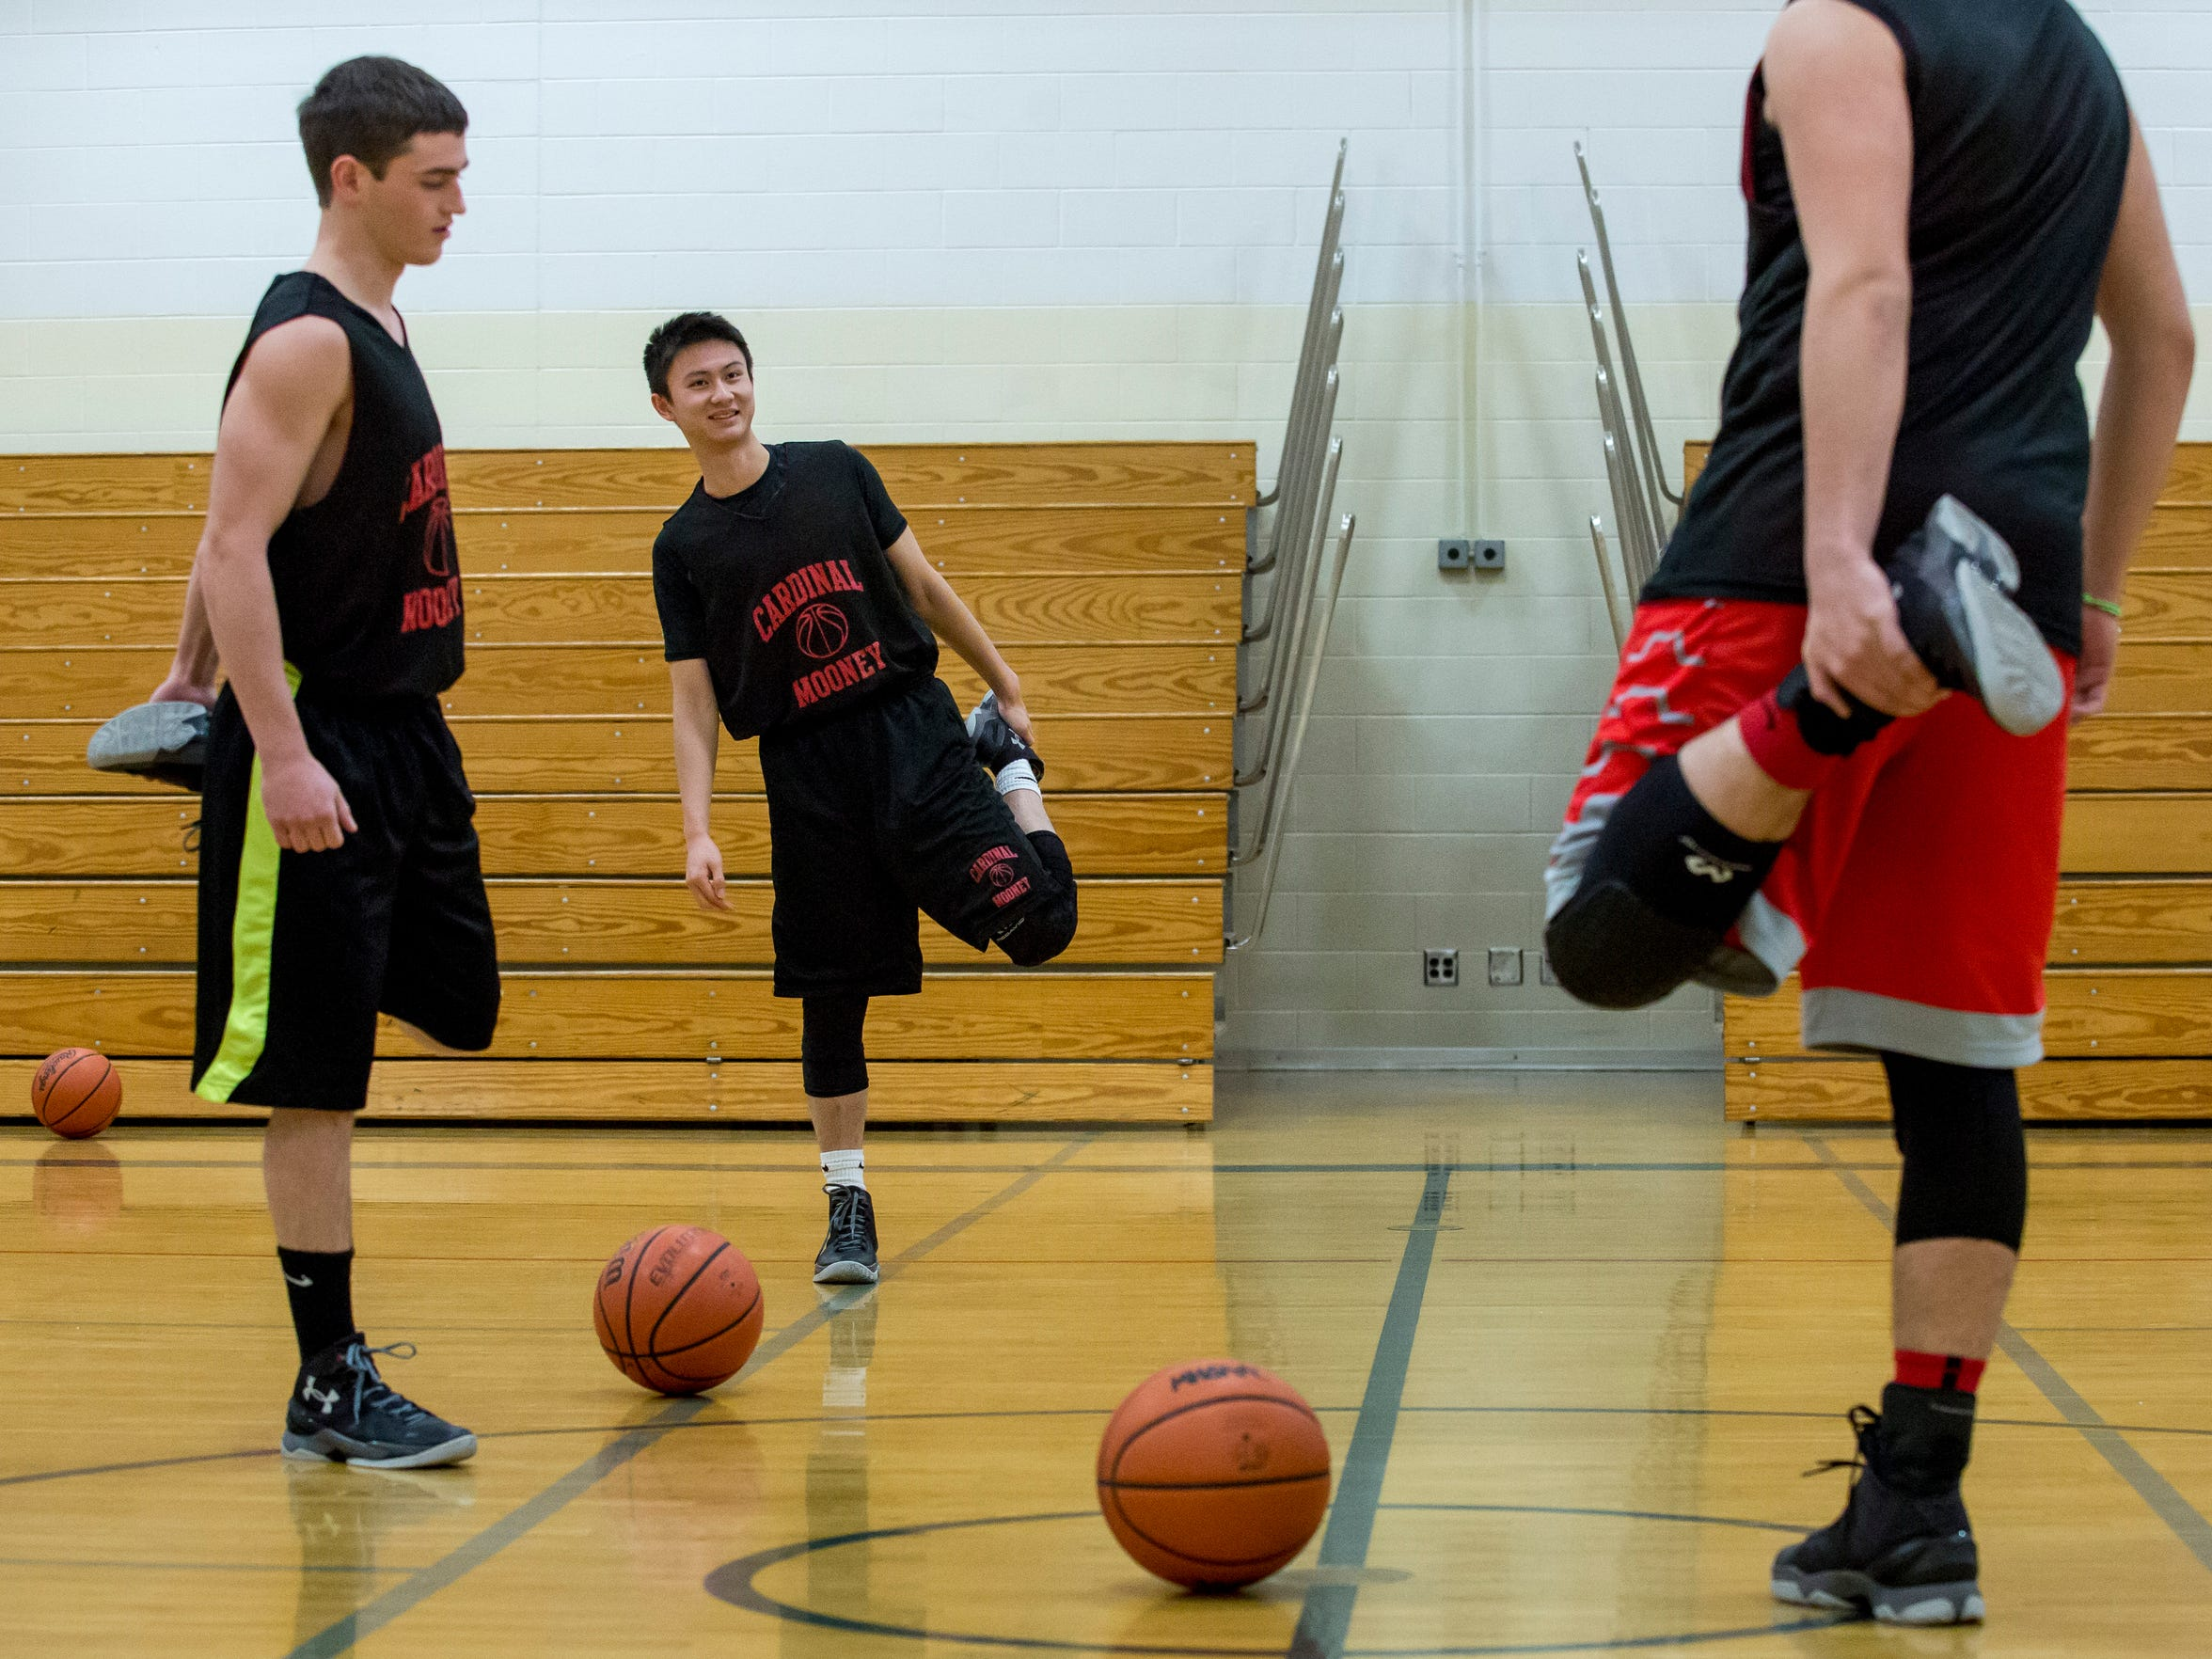 Senior Chris Xuan, 19, stretches with other members